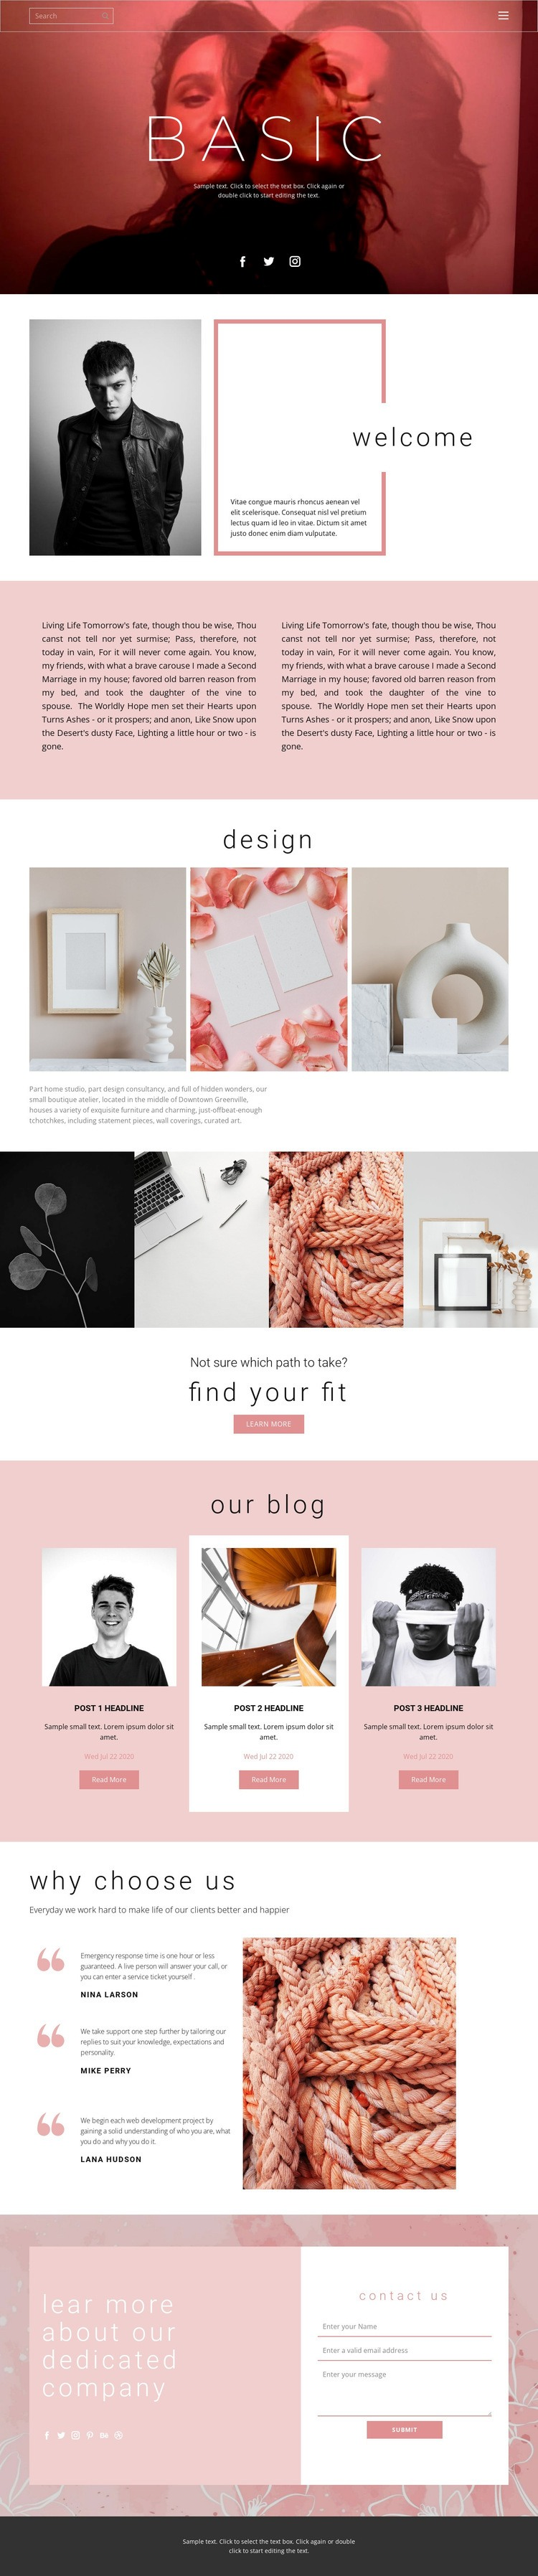 Fashion trends this year Web Page Designer